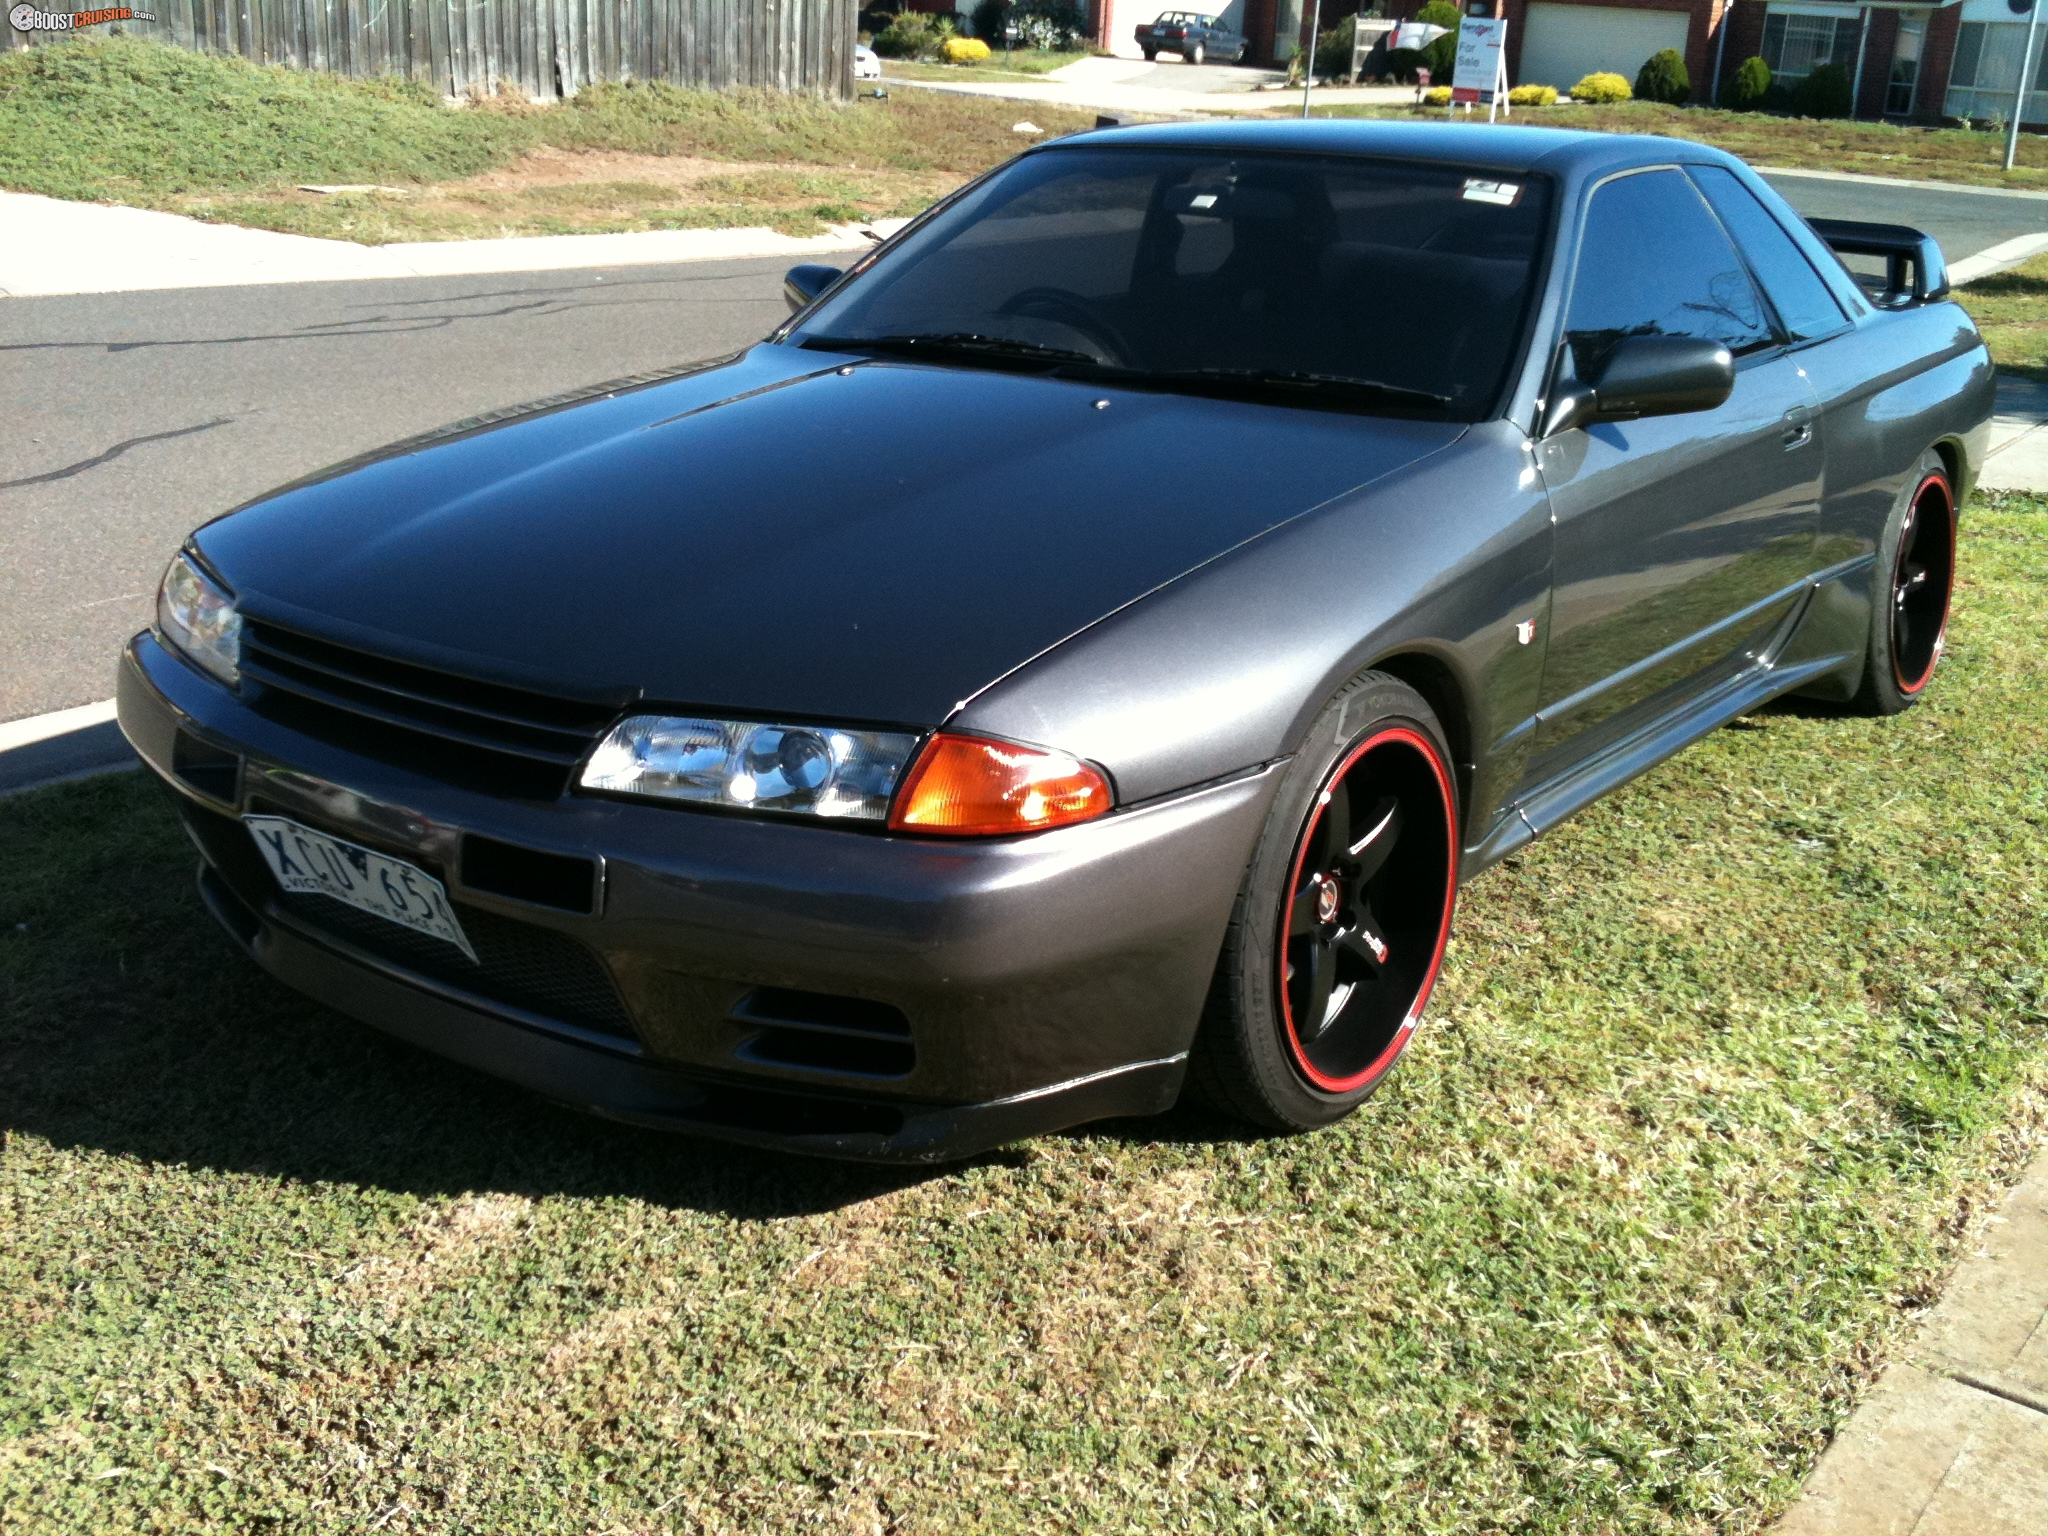 nissan skyline r32 gtr n1 for sale or swap qld brisbane 616702. Black Bedroom Furniture Sets. Home Design Ideas